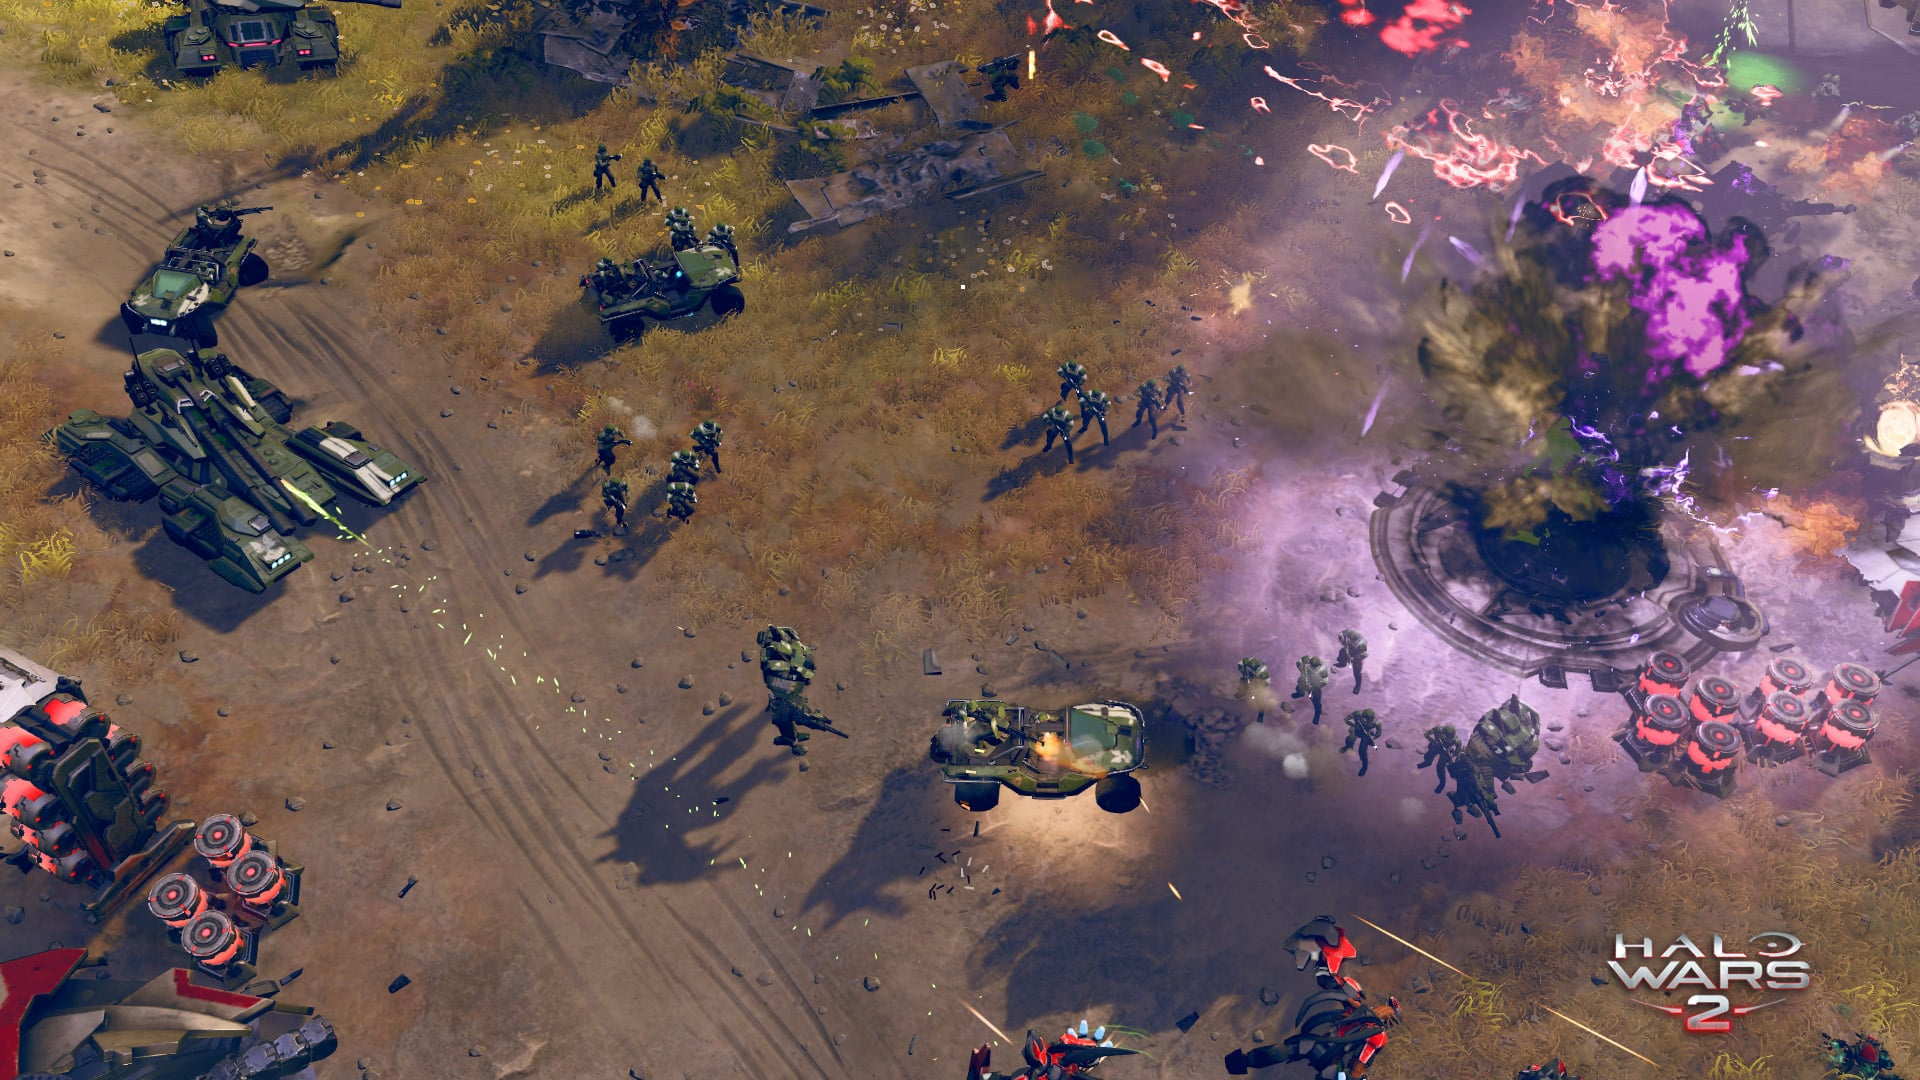 Best RTS Games? 15 Of The Best Real-Time Strategy Titles (August 2019)